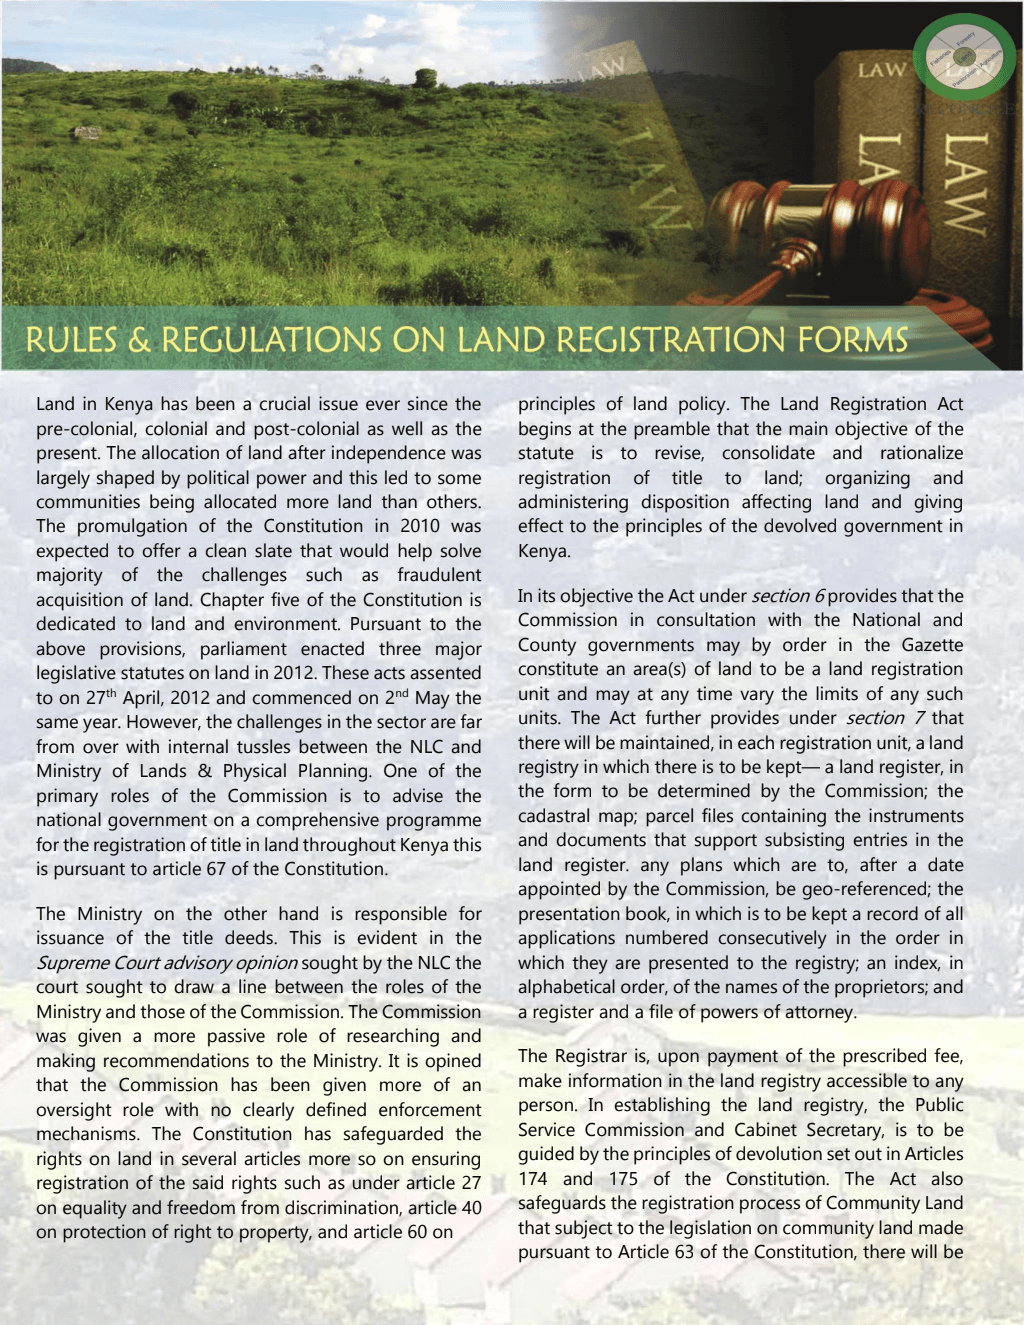 Rules & Regulations on Land Registration Forms